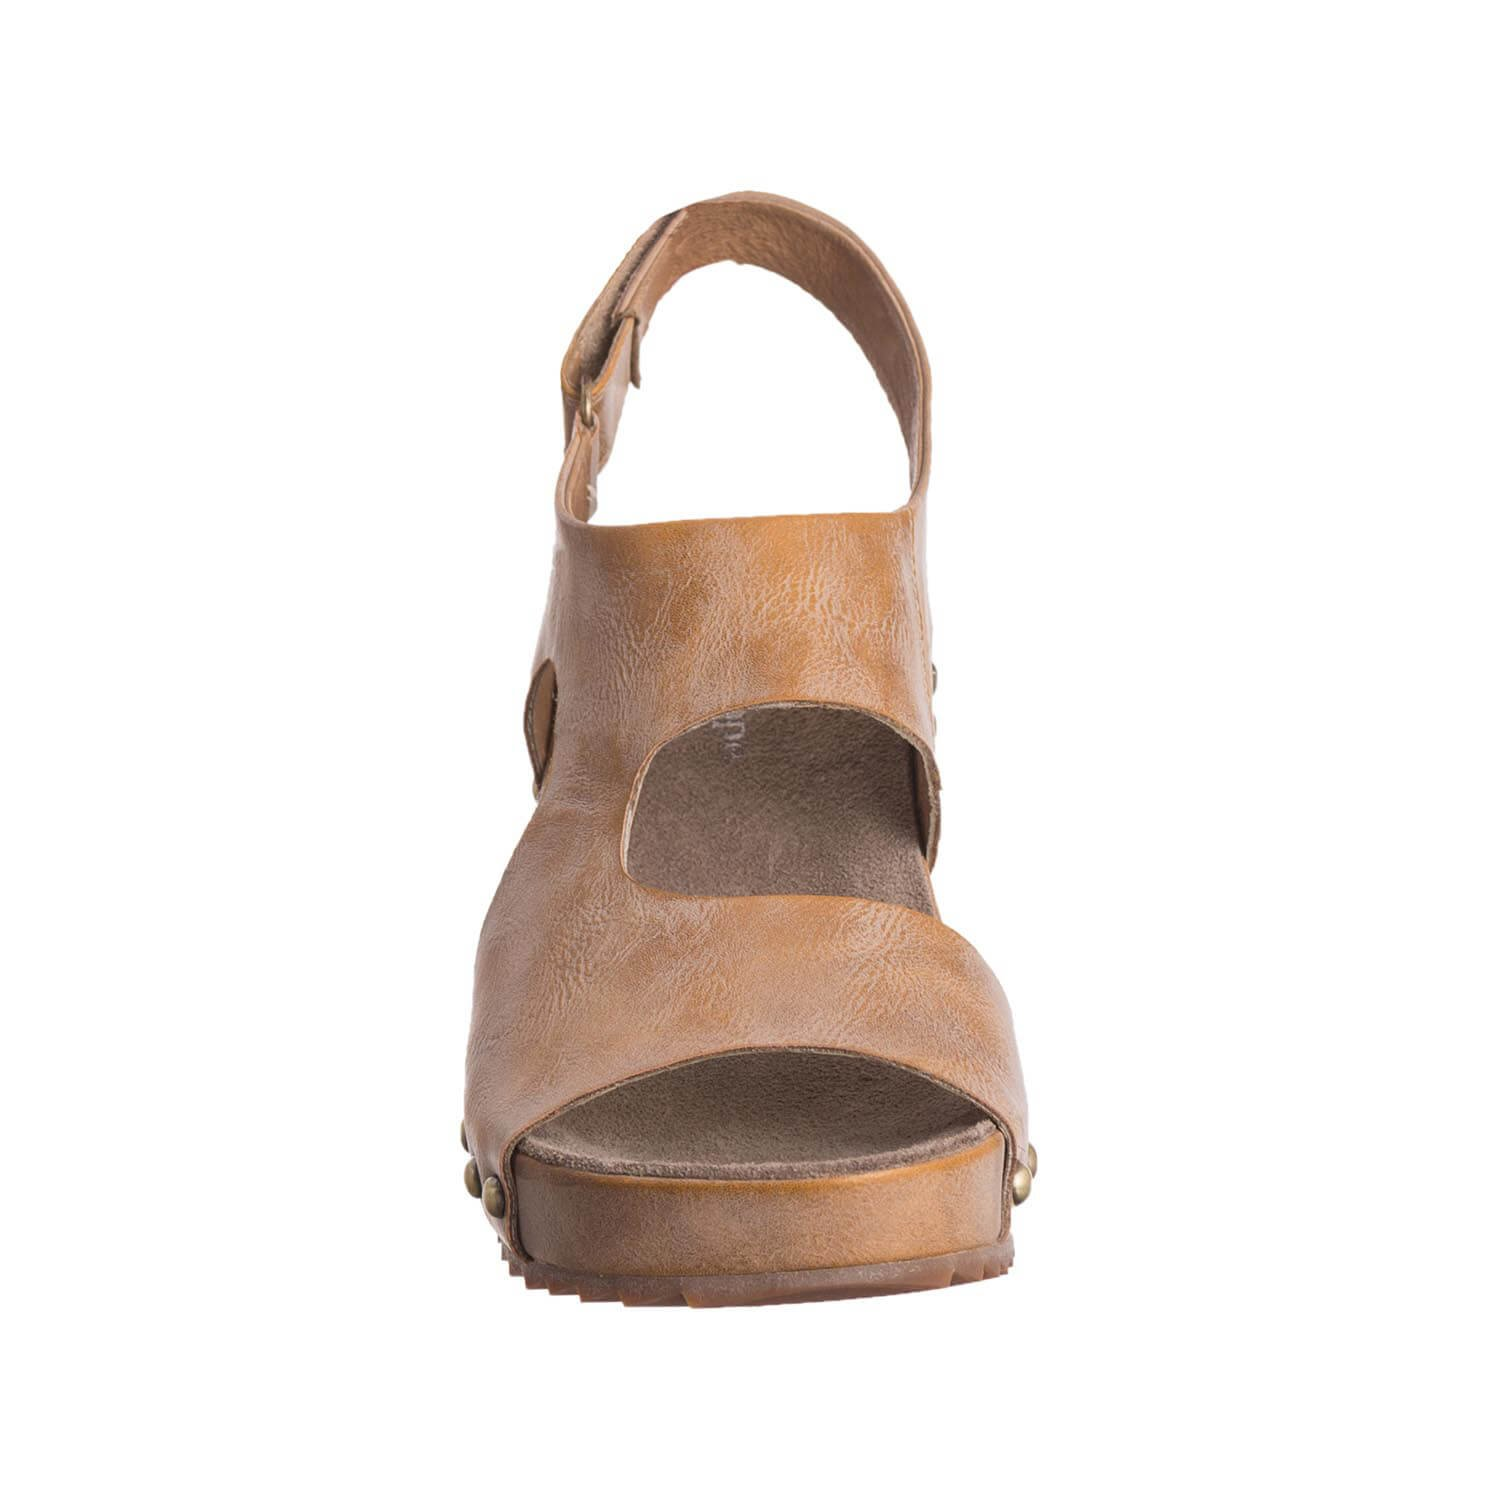 Antelope Women's 537 Metallic Leather Side Cut Wedge B079G3V8BY 8 B(M) US / 39 EU|Taupe